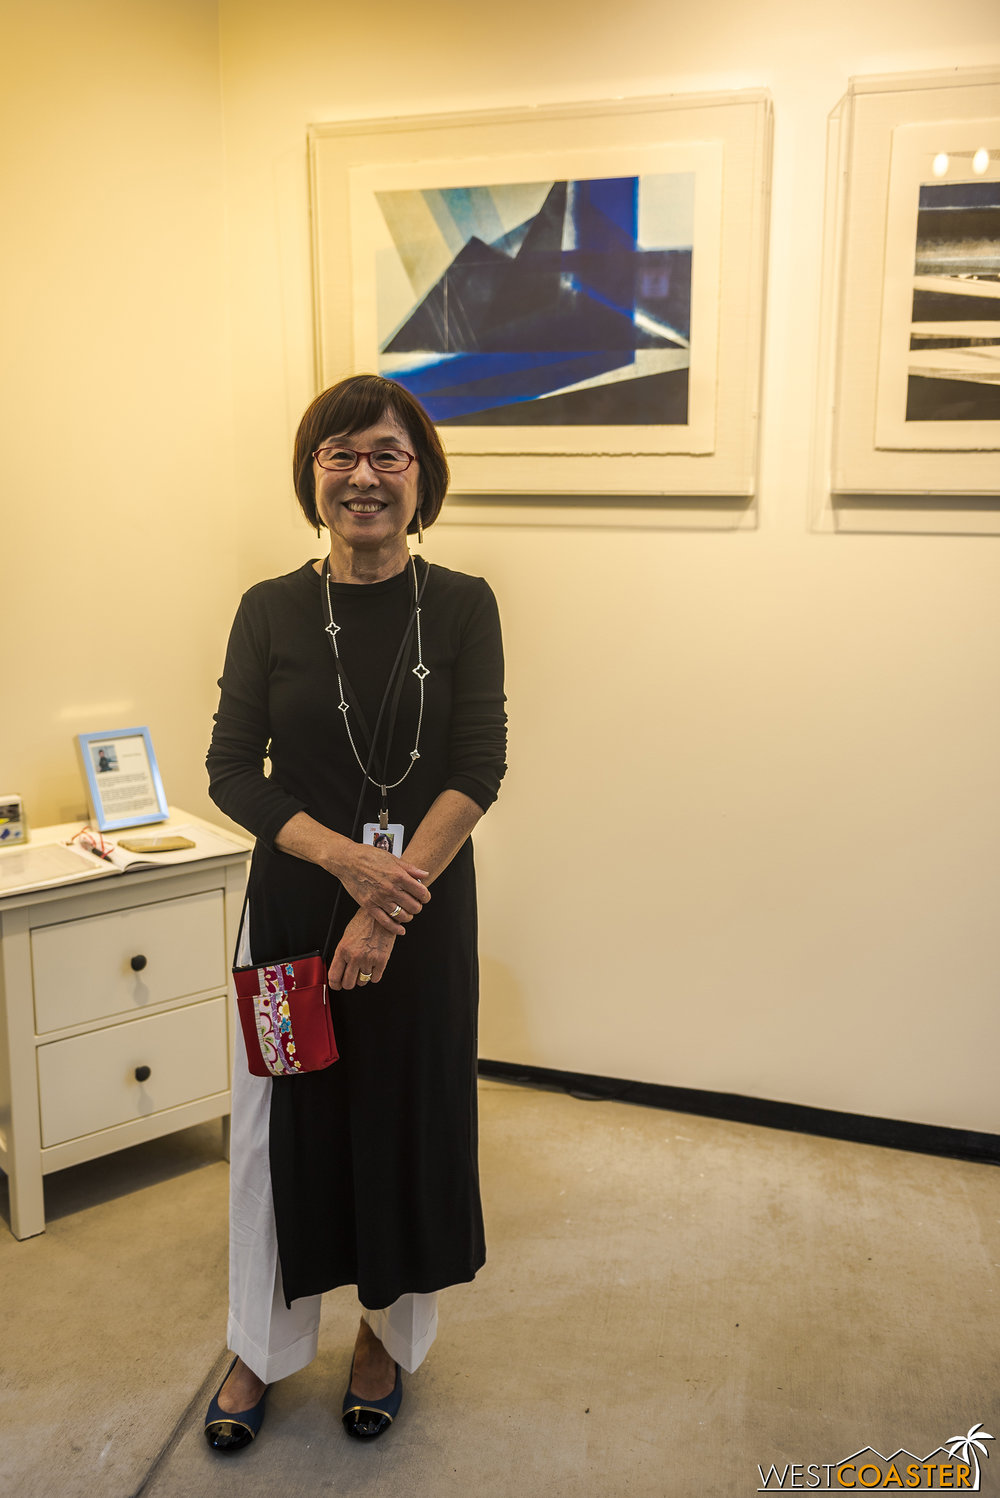 Yoonsook Bai Ryang, the last artist, works in printmaking.